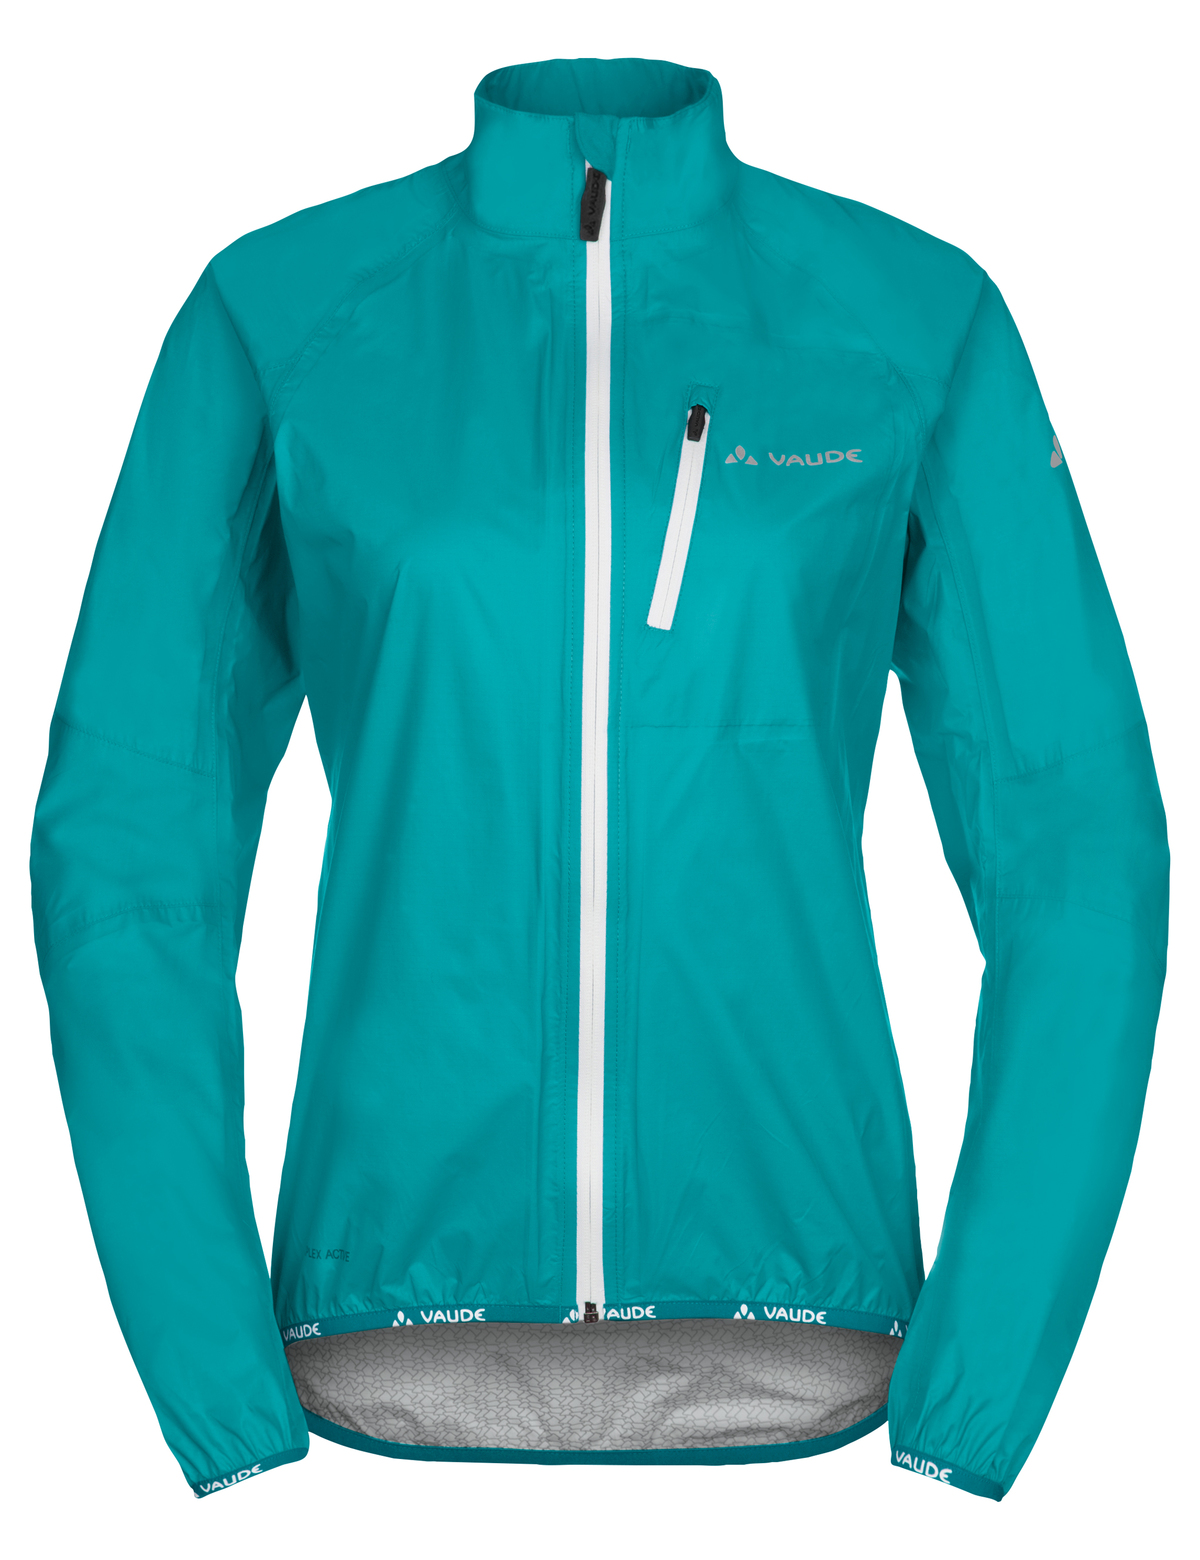 VAUDE Women´s Drop Jacket III reef Größe 34 - schneider-sports